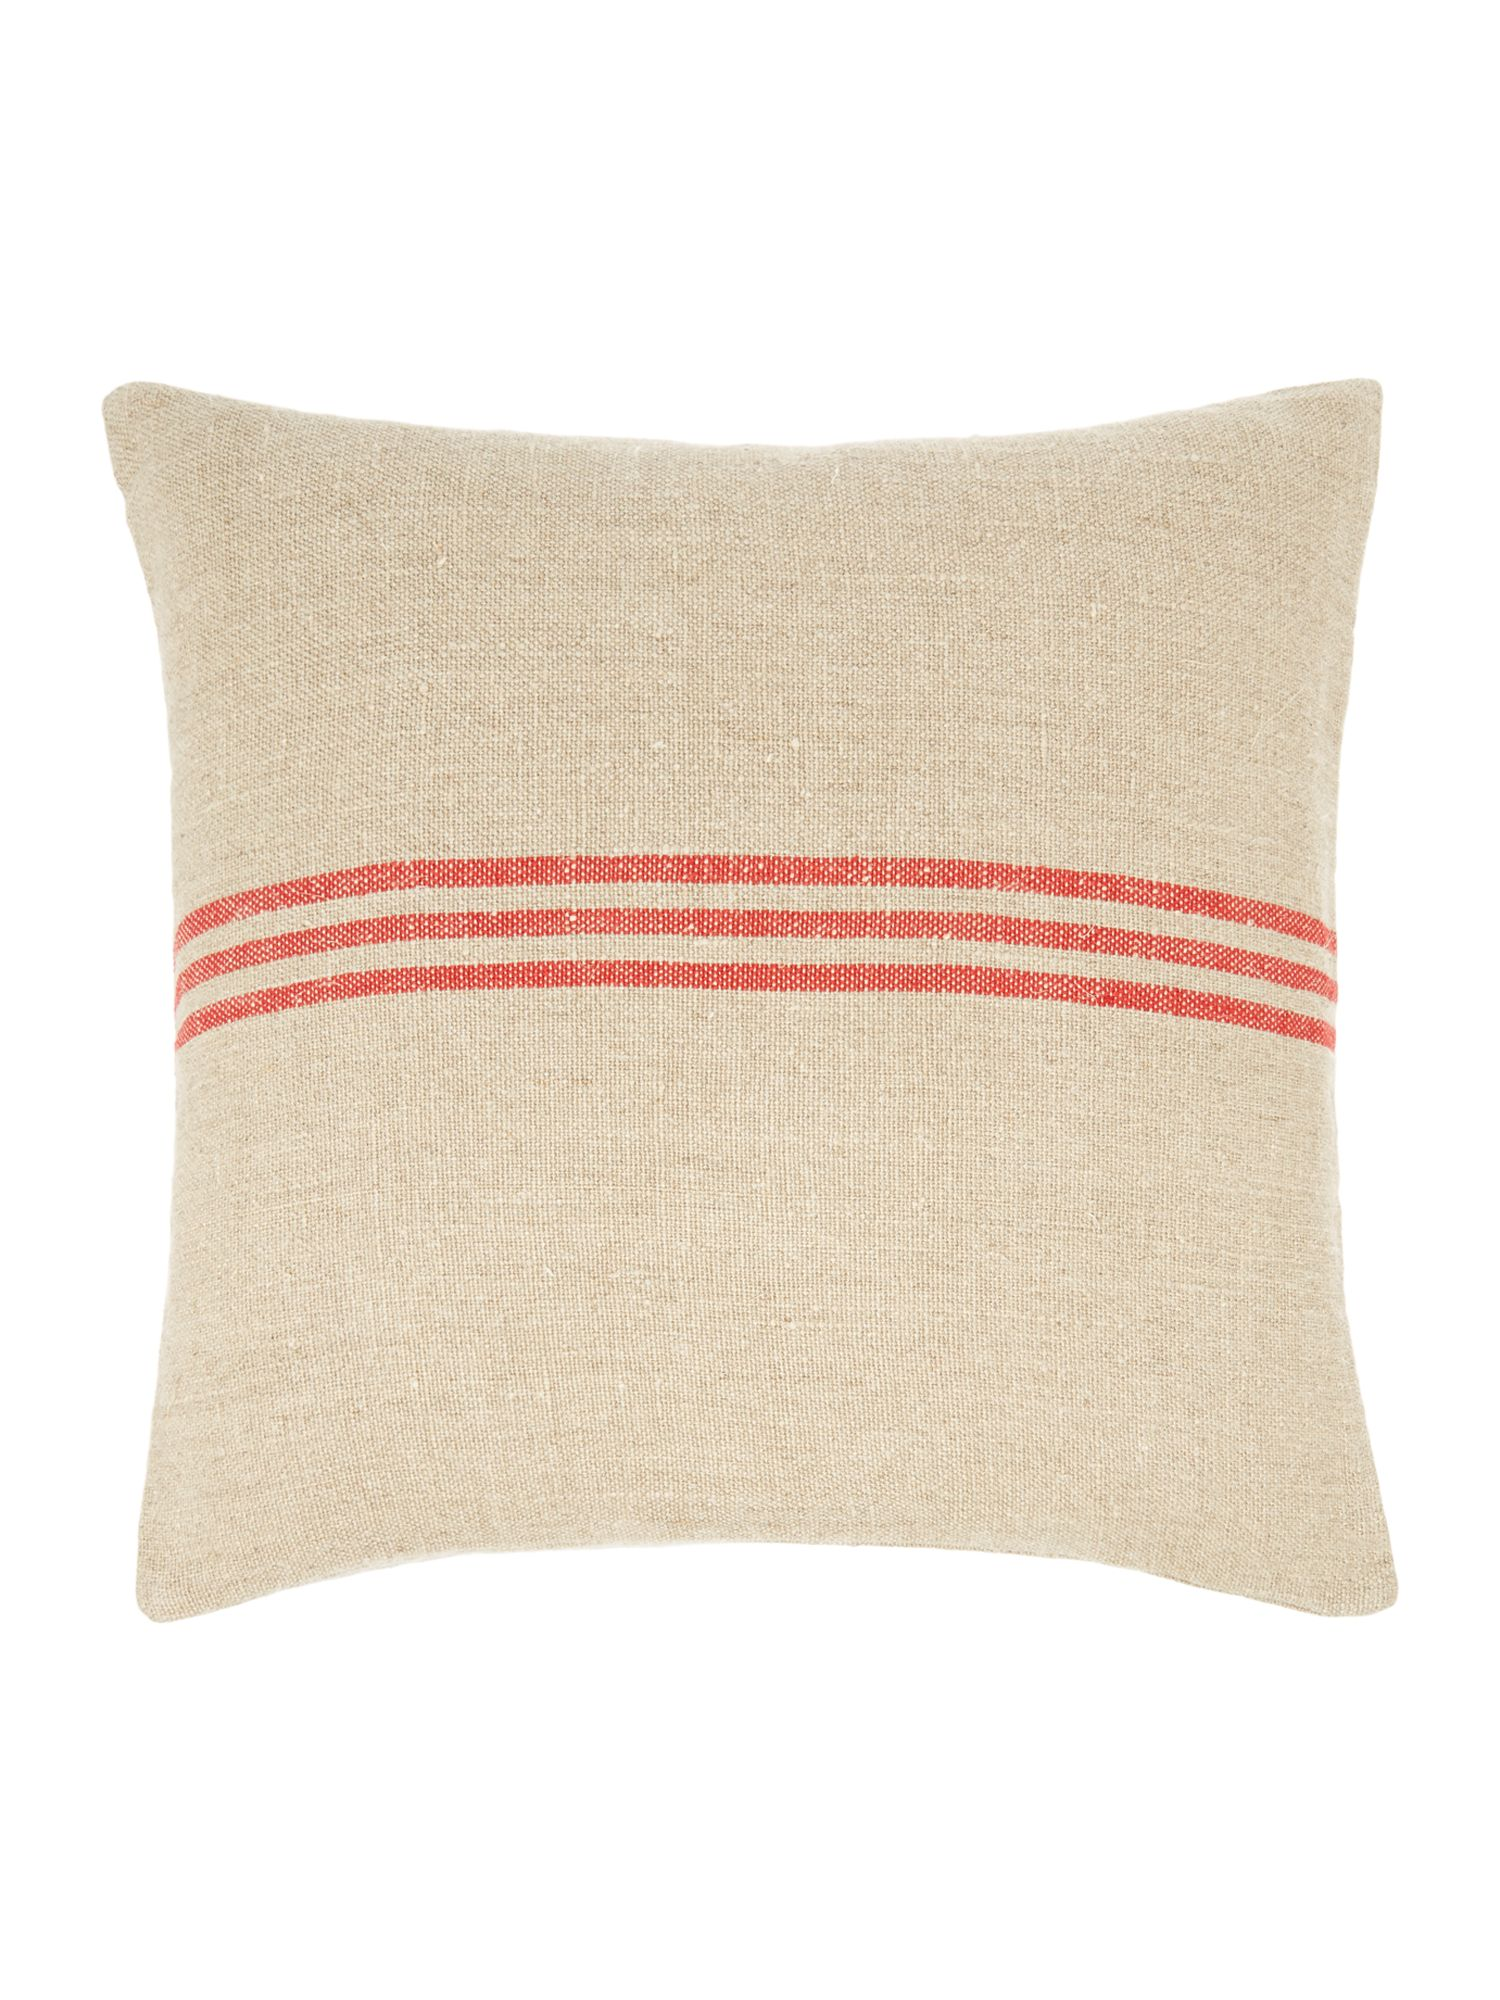 Linen stripe cushion, red